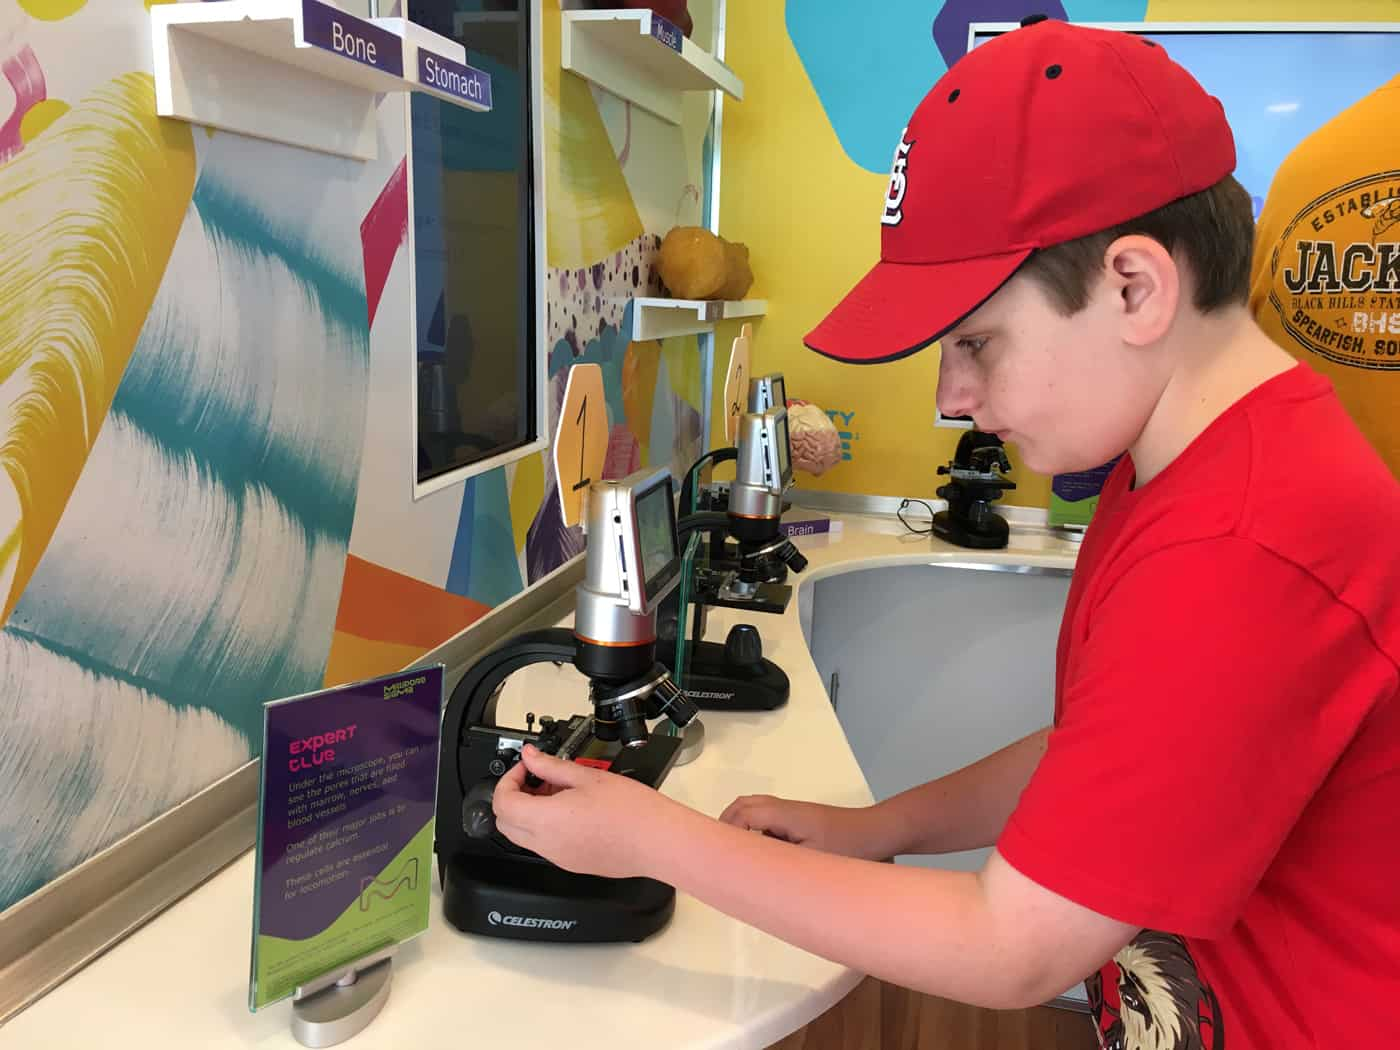 Kid experiments with a microscope during the Curiosity Cube tour in St. Louis